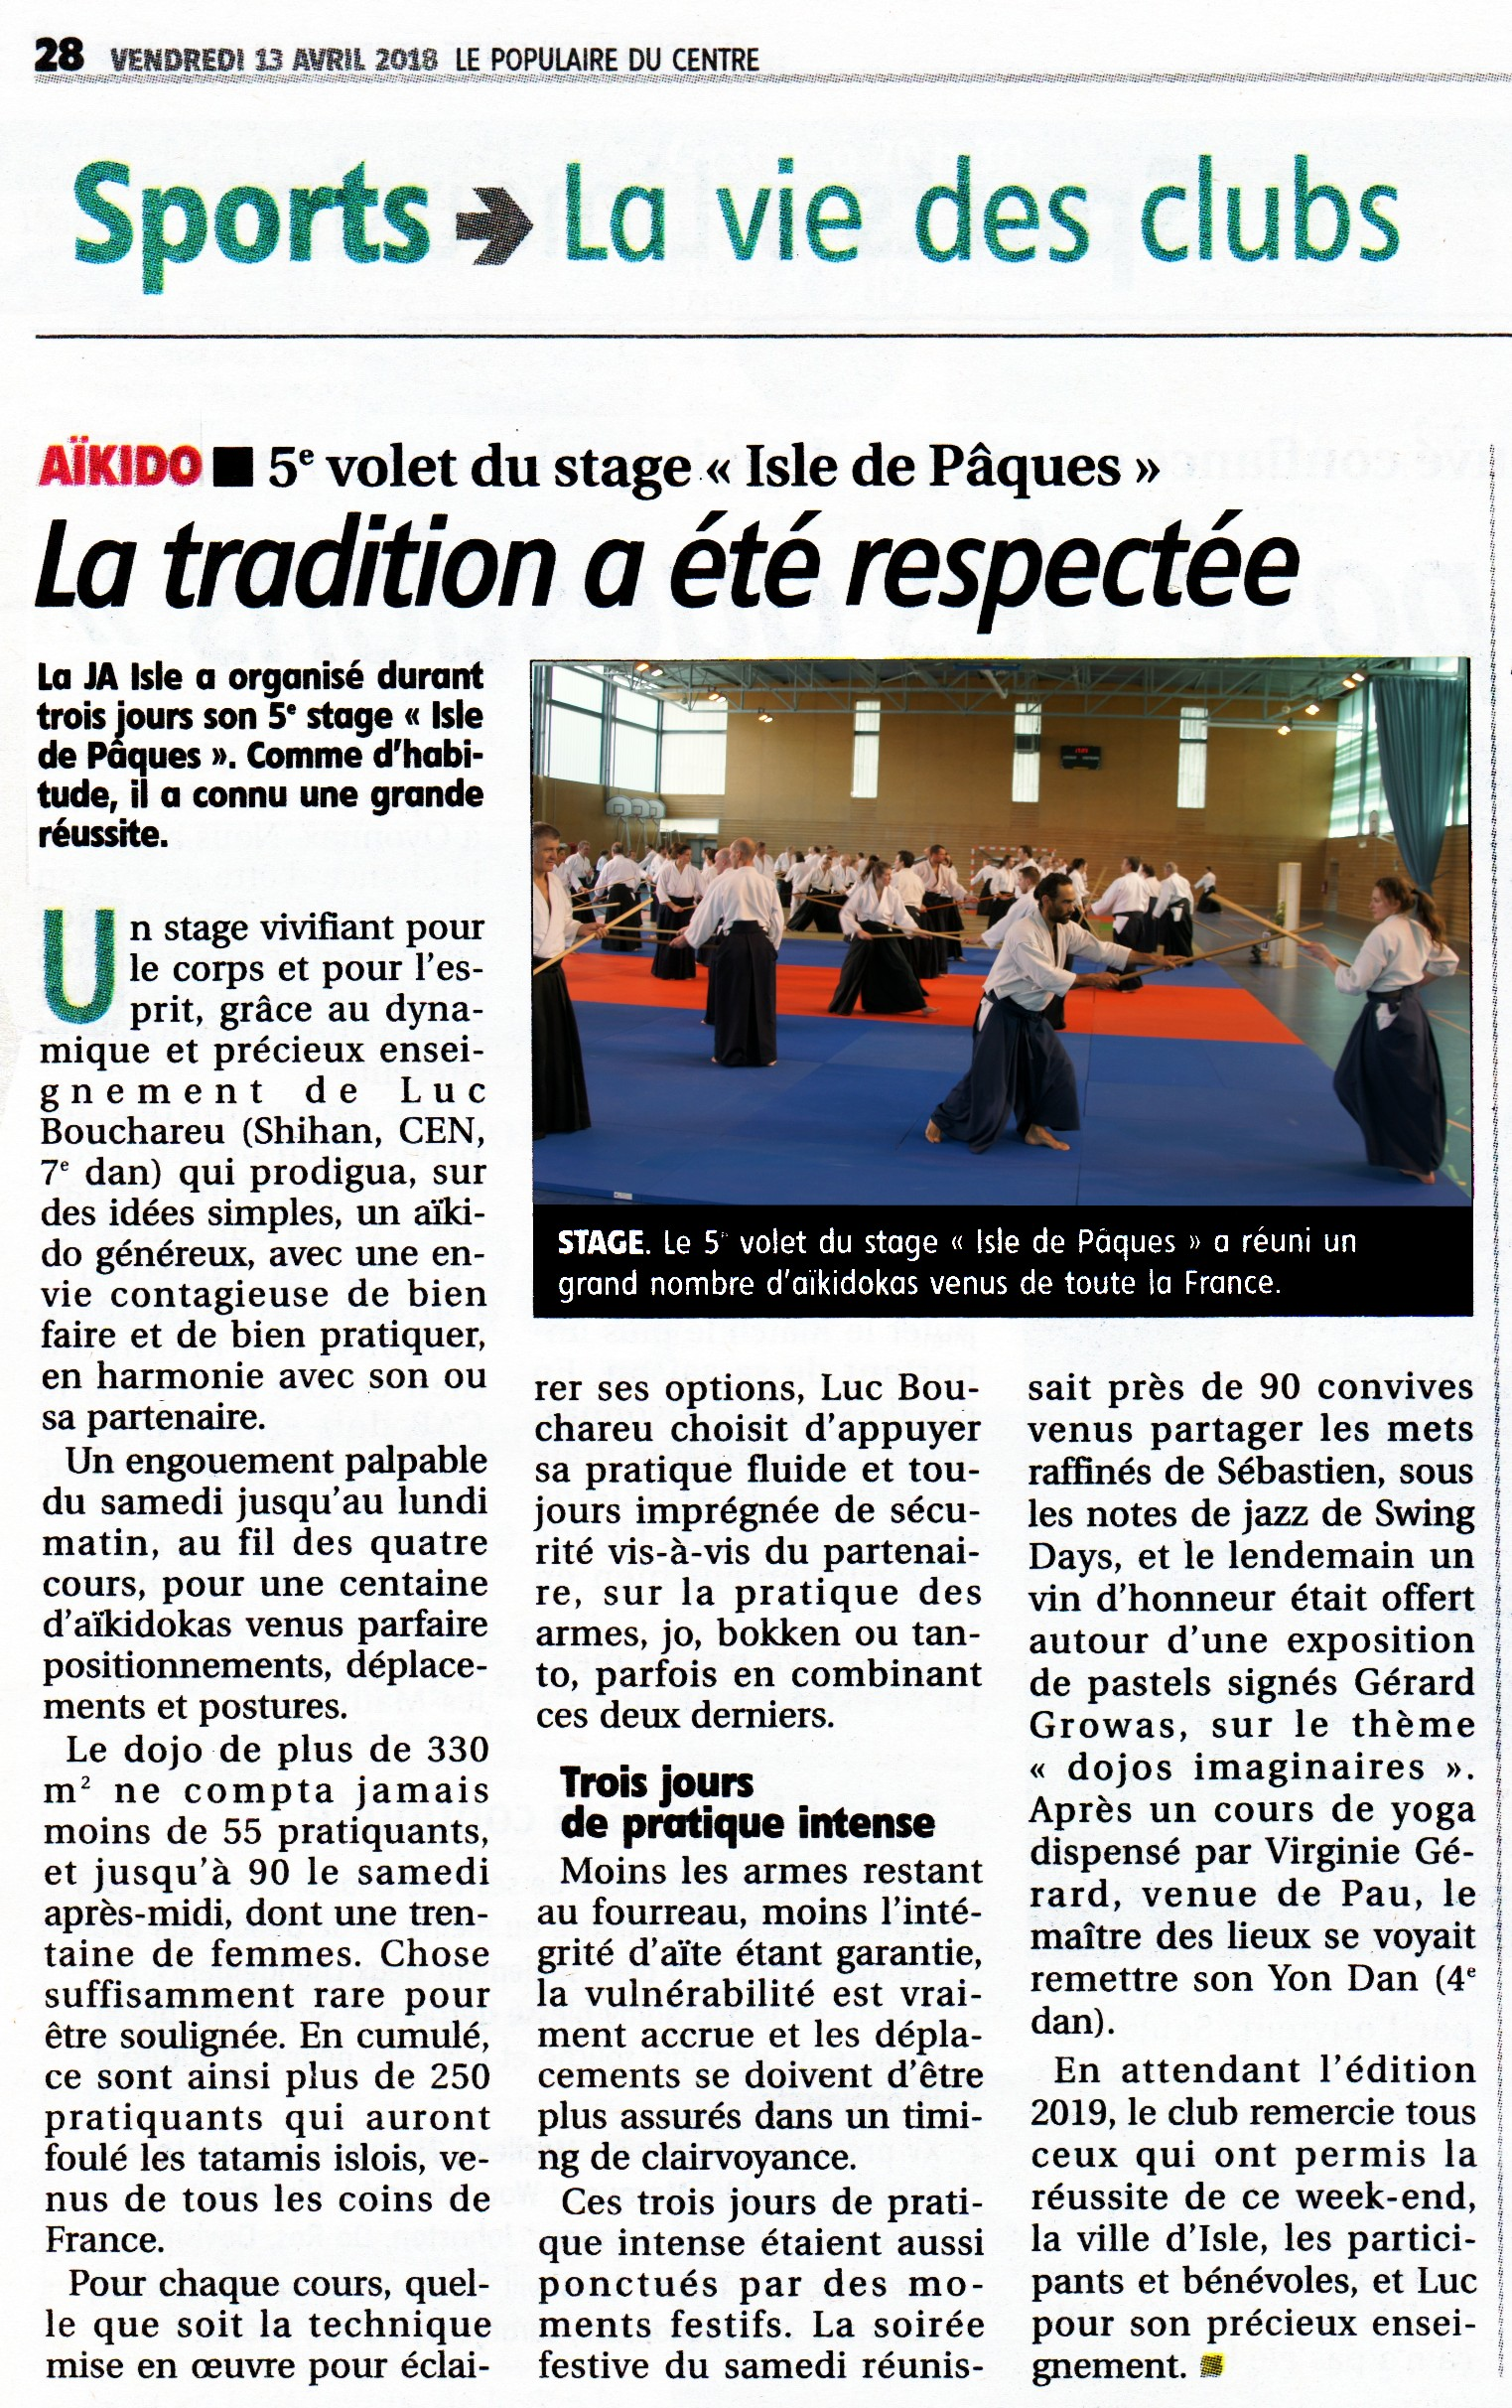 180331_04_01_02 Article du Popu ven 13 avril 2018.jpg - 1,16 MB